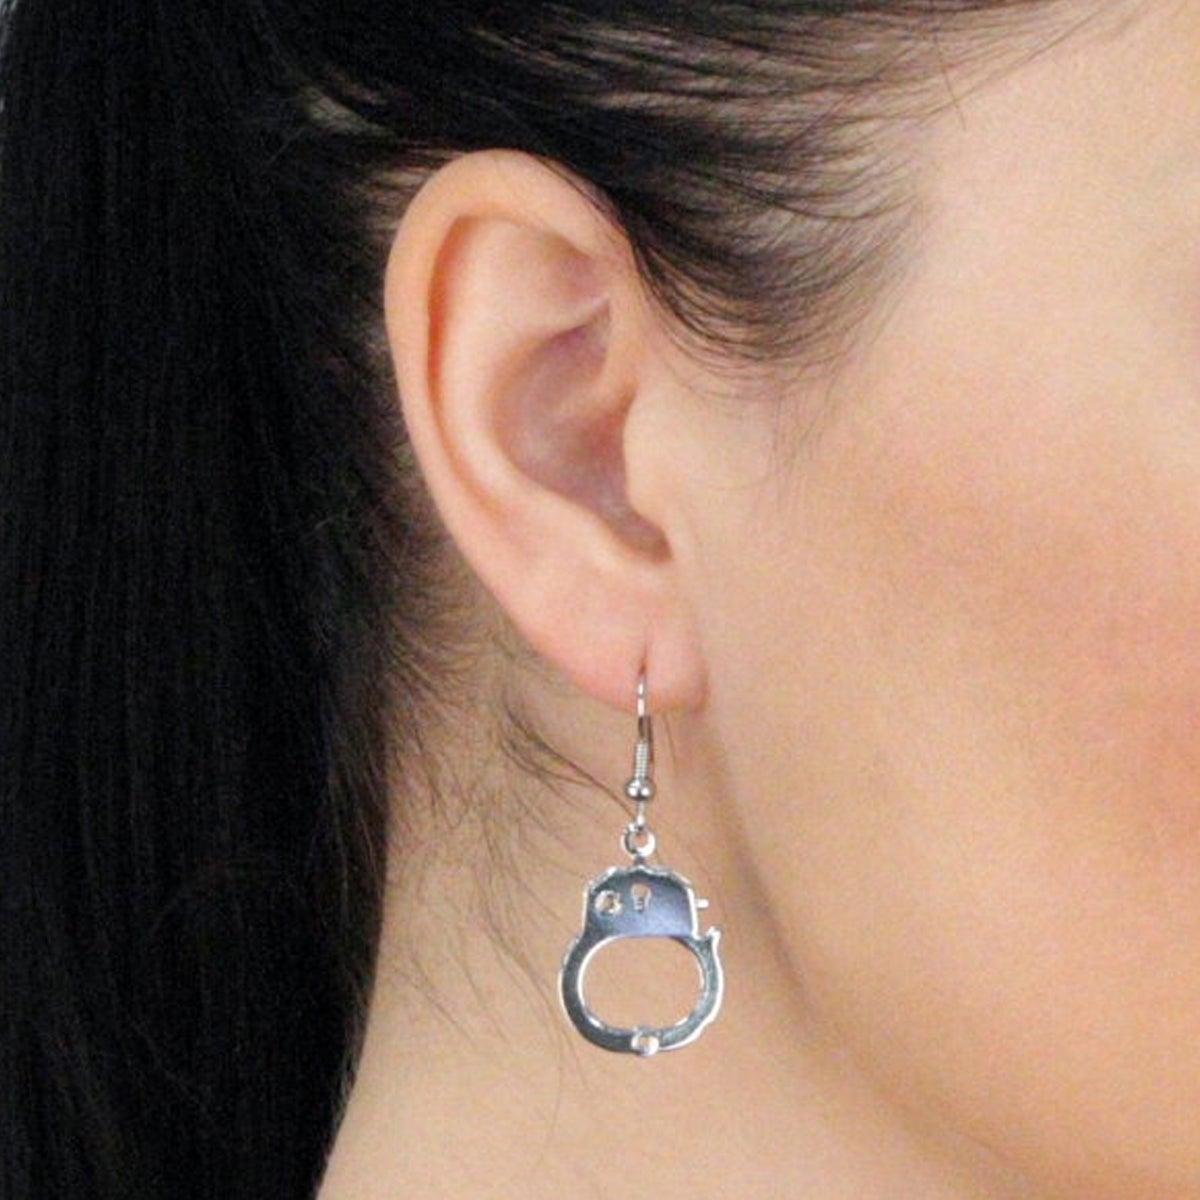 Silver Dangle Handcuff Earrings Free Shipping On Orders Over 45 11804816